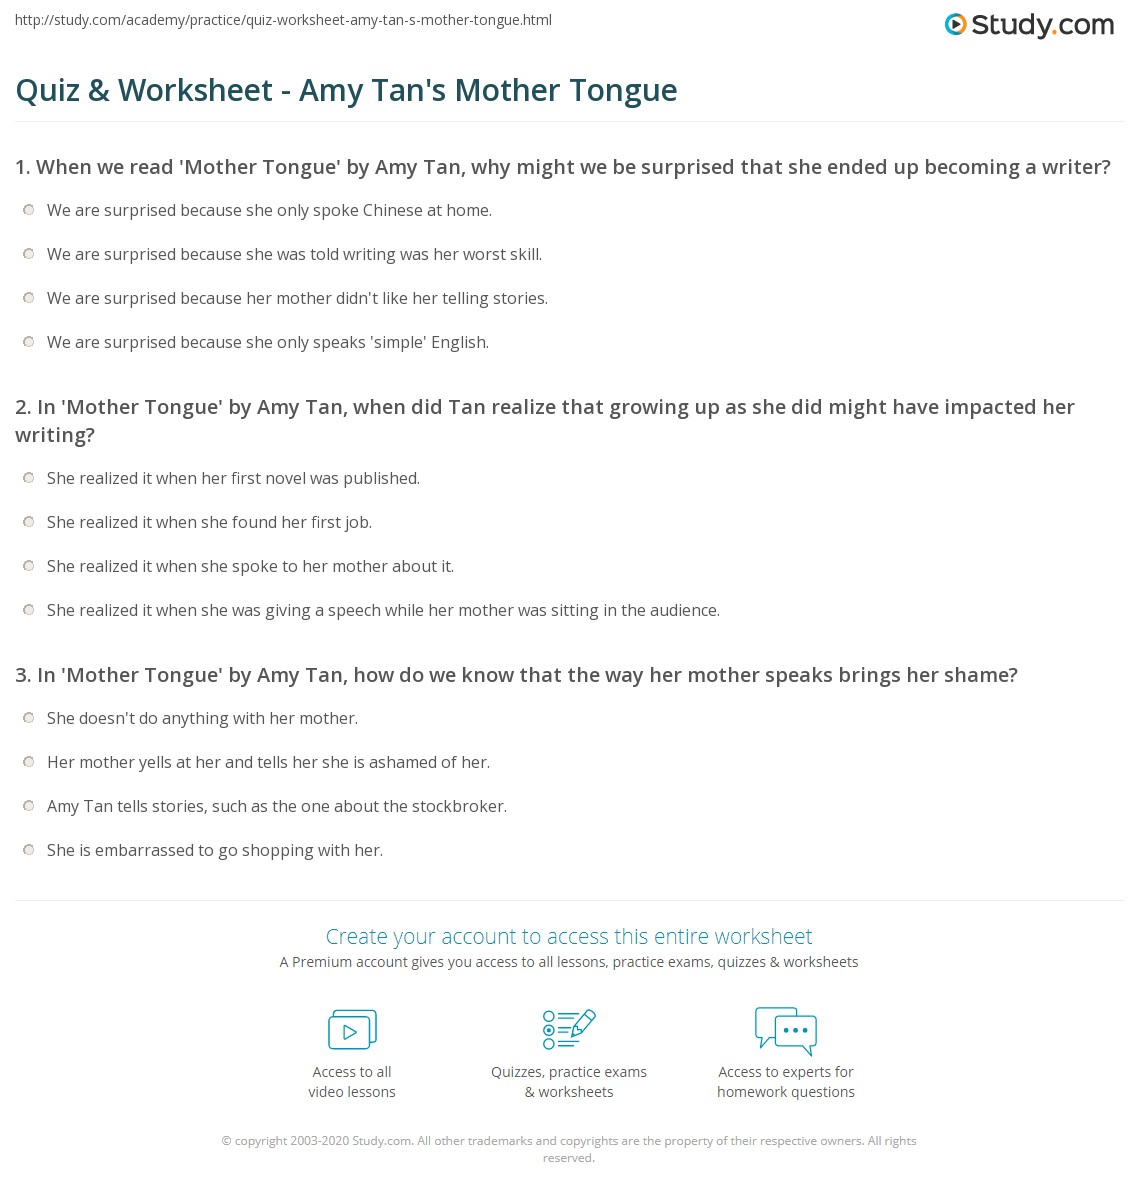 What Is Mother Tongue By Amy Tan About Amy Tan S By